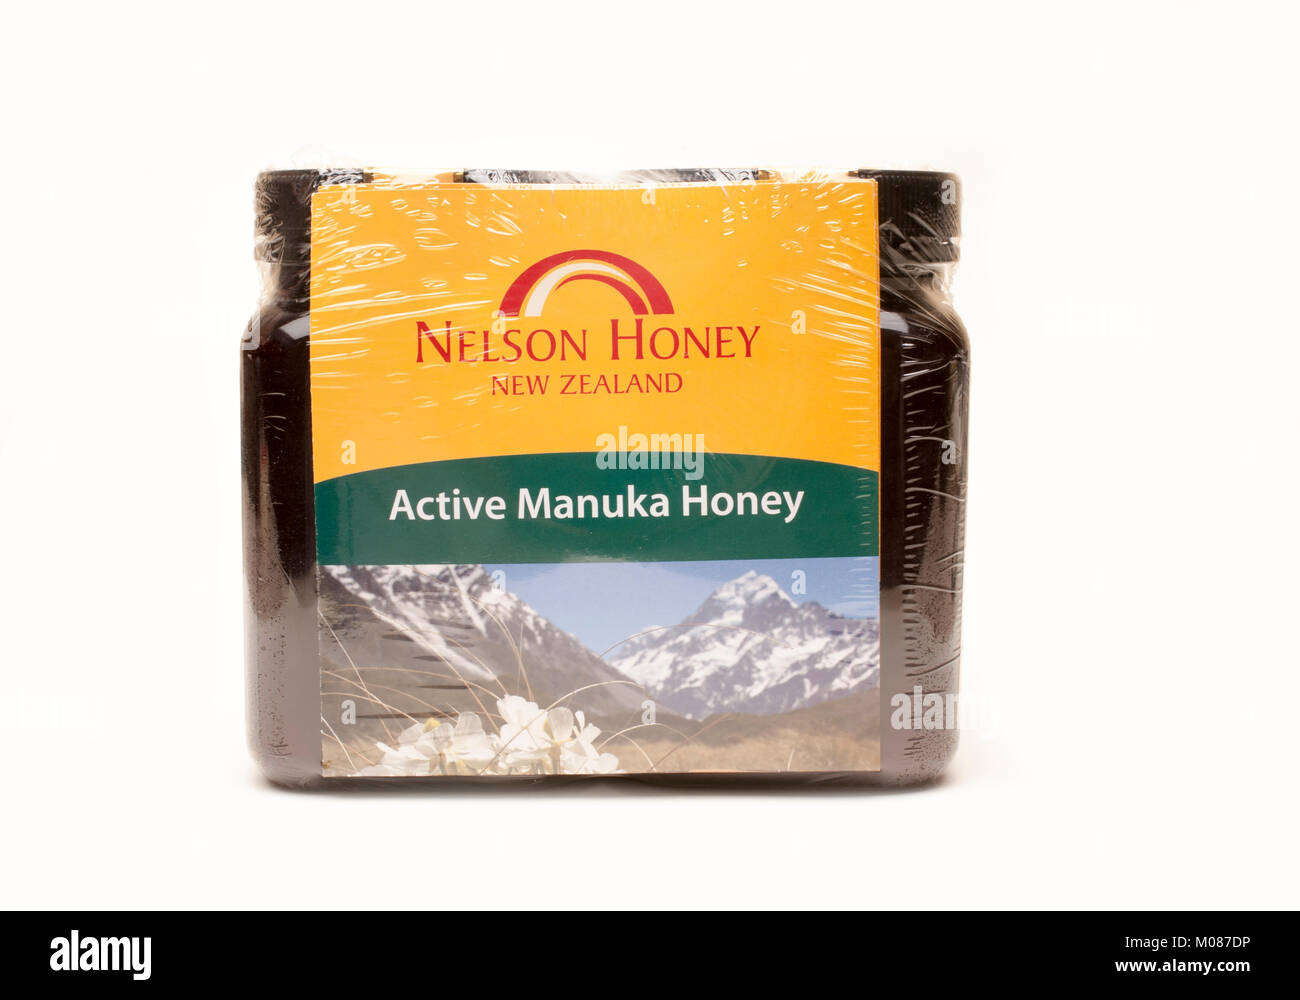 Multi Pack of Manuka Honey on a white background (Not Cut Out) - Stock Image